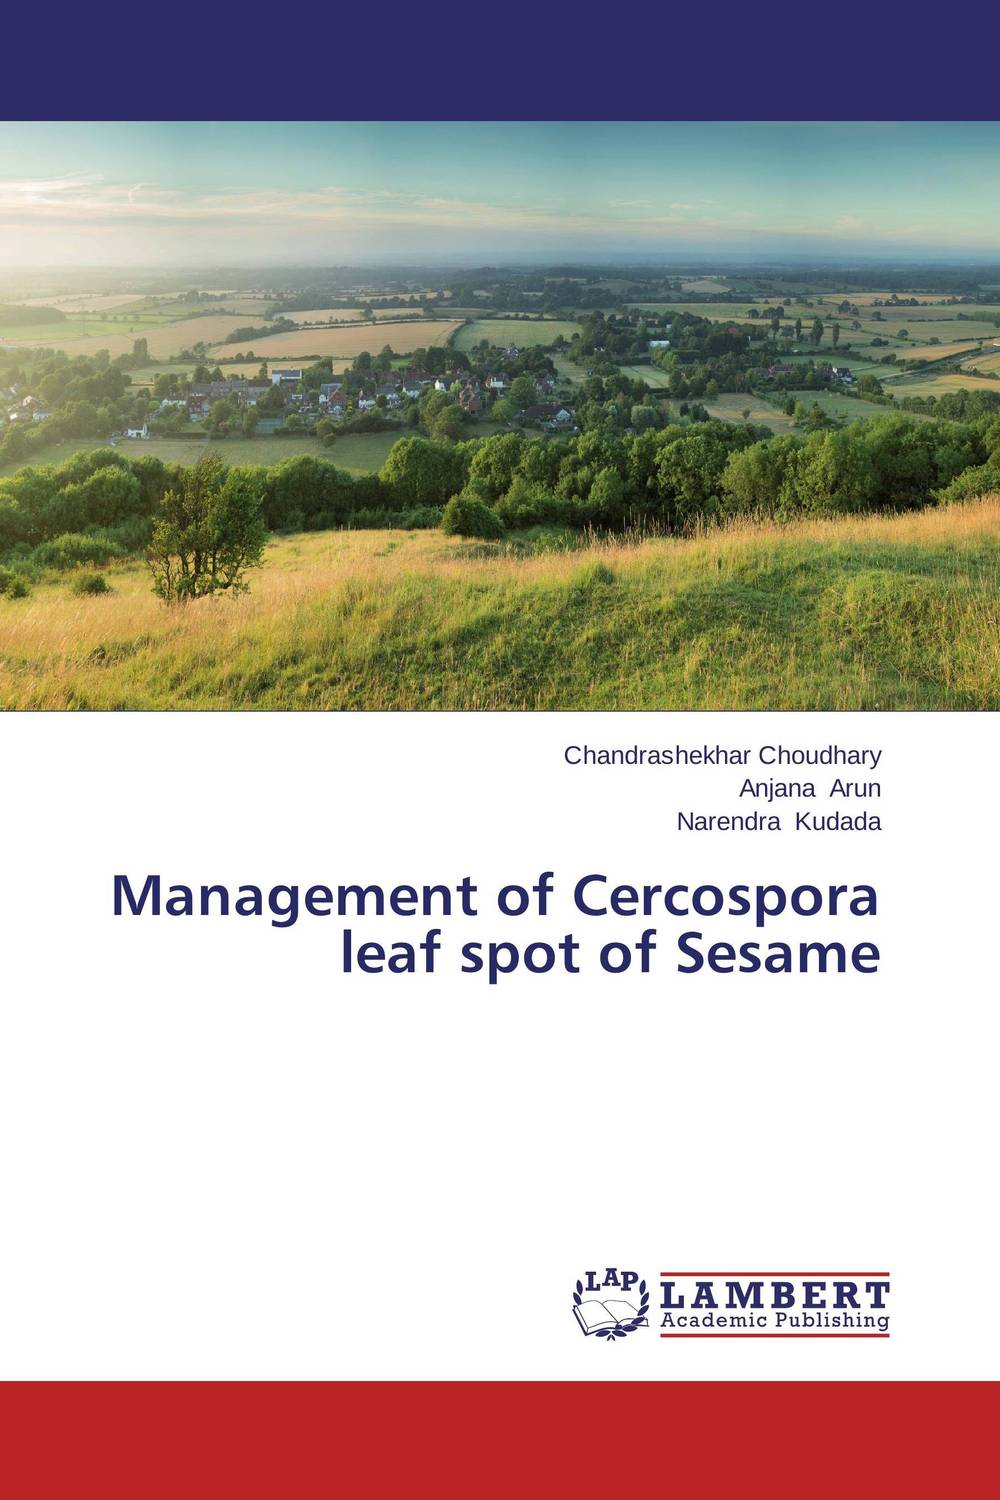 Management of Cercospora leaf spot of Sesame victoria wapf the disease of chopin a comprehensive study of a lifelong suffering